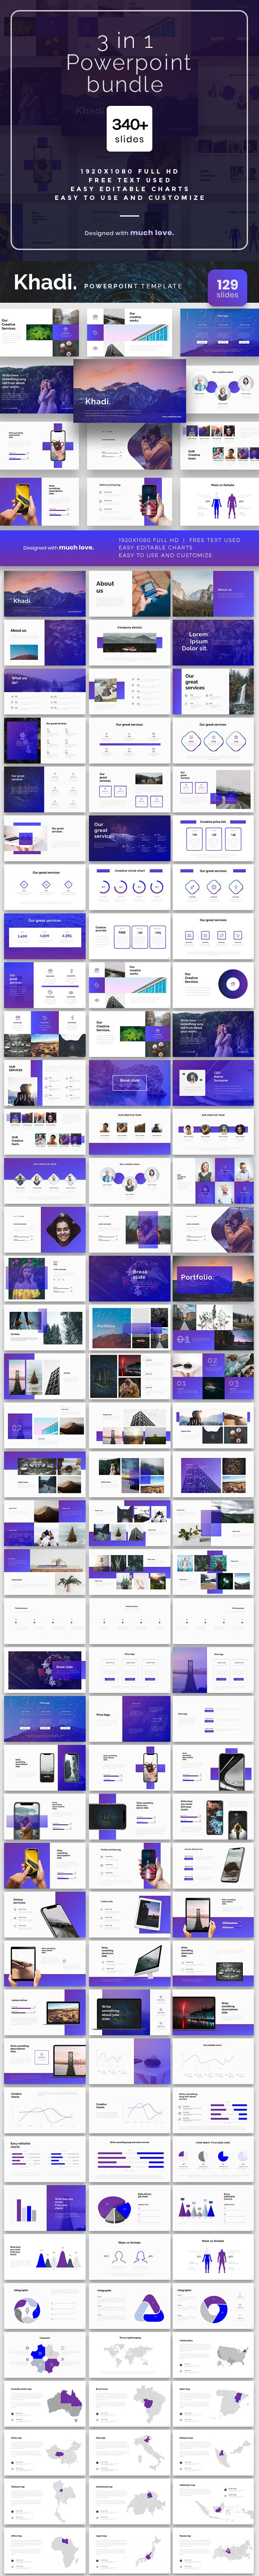 3 in 1 Bundle Powerpoint Template - PowerPoint Templates Presentation Templates